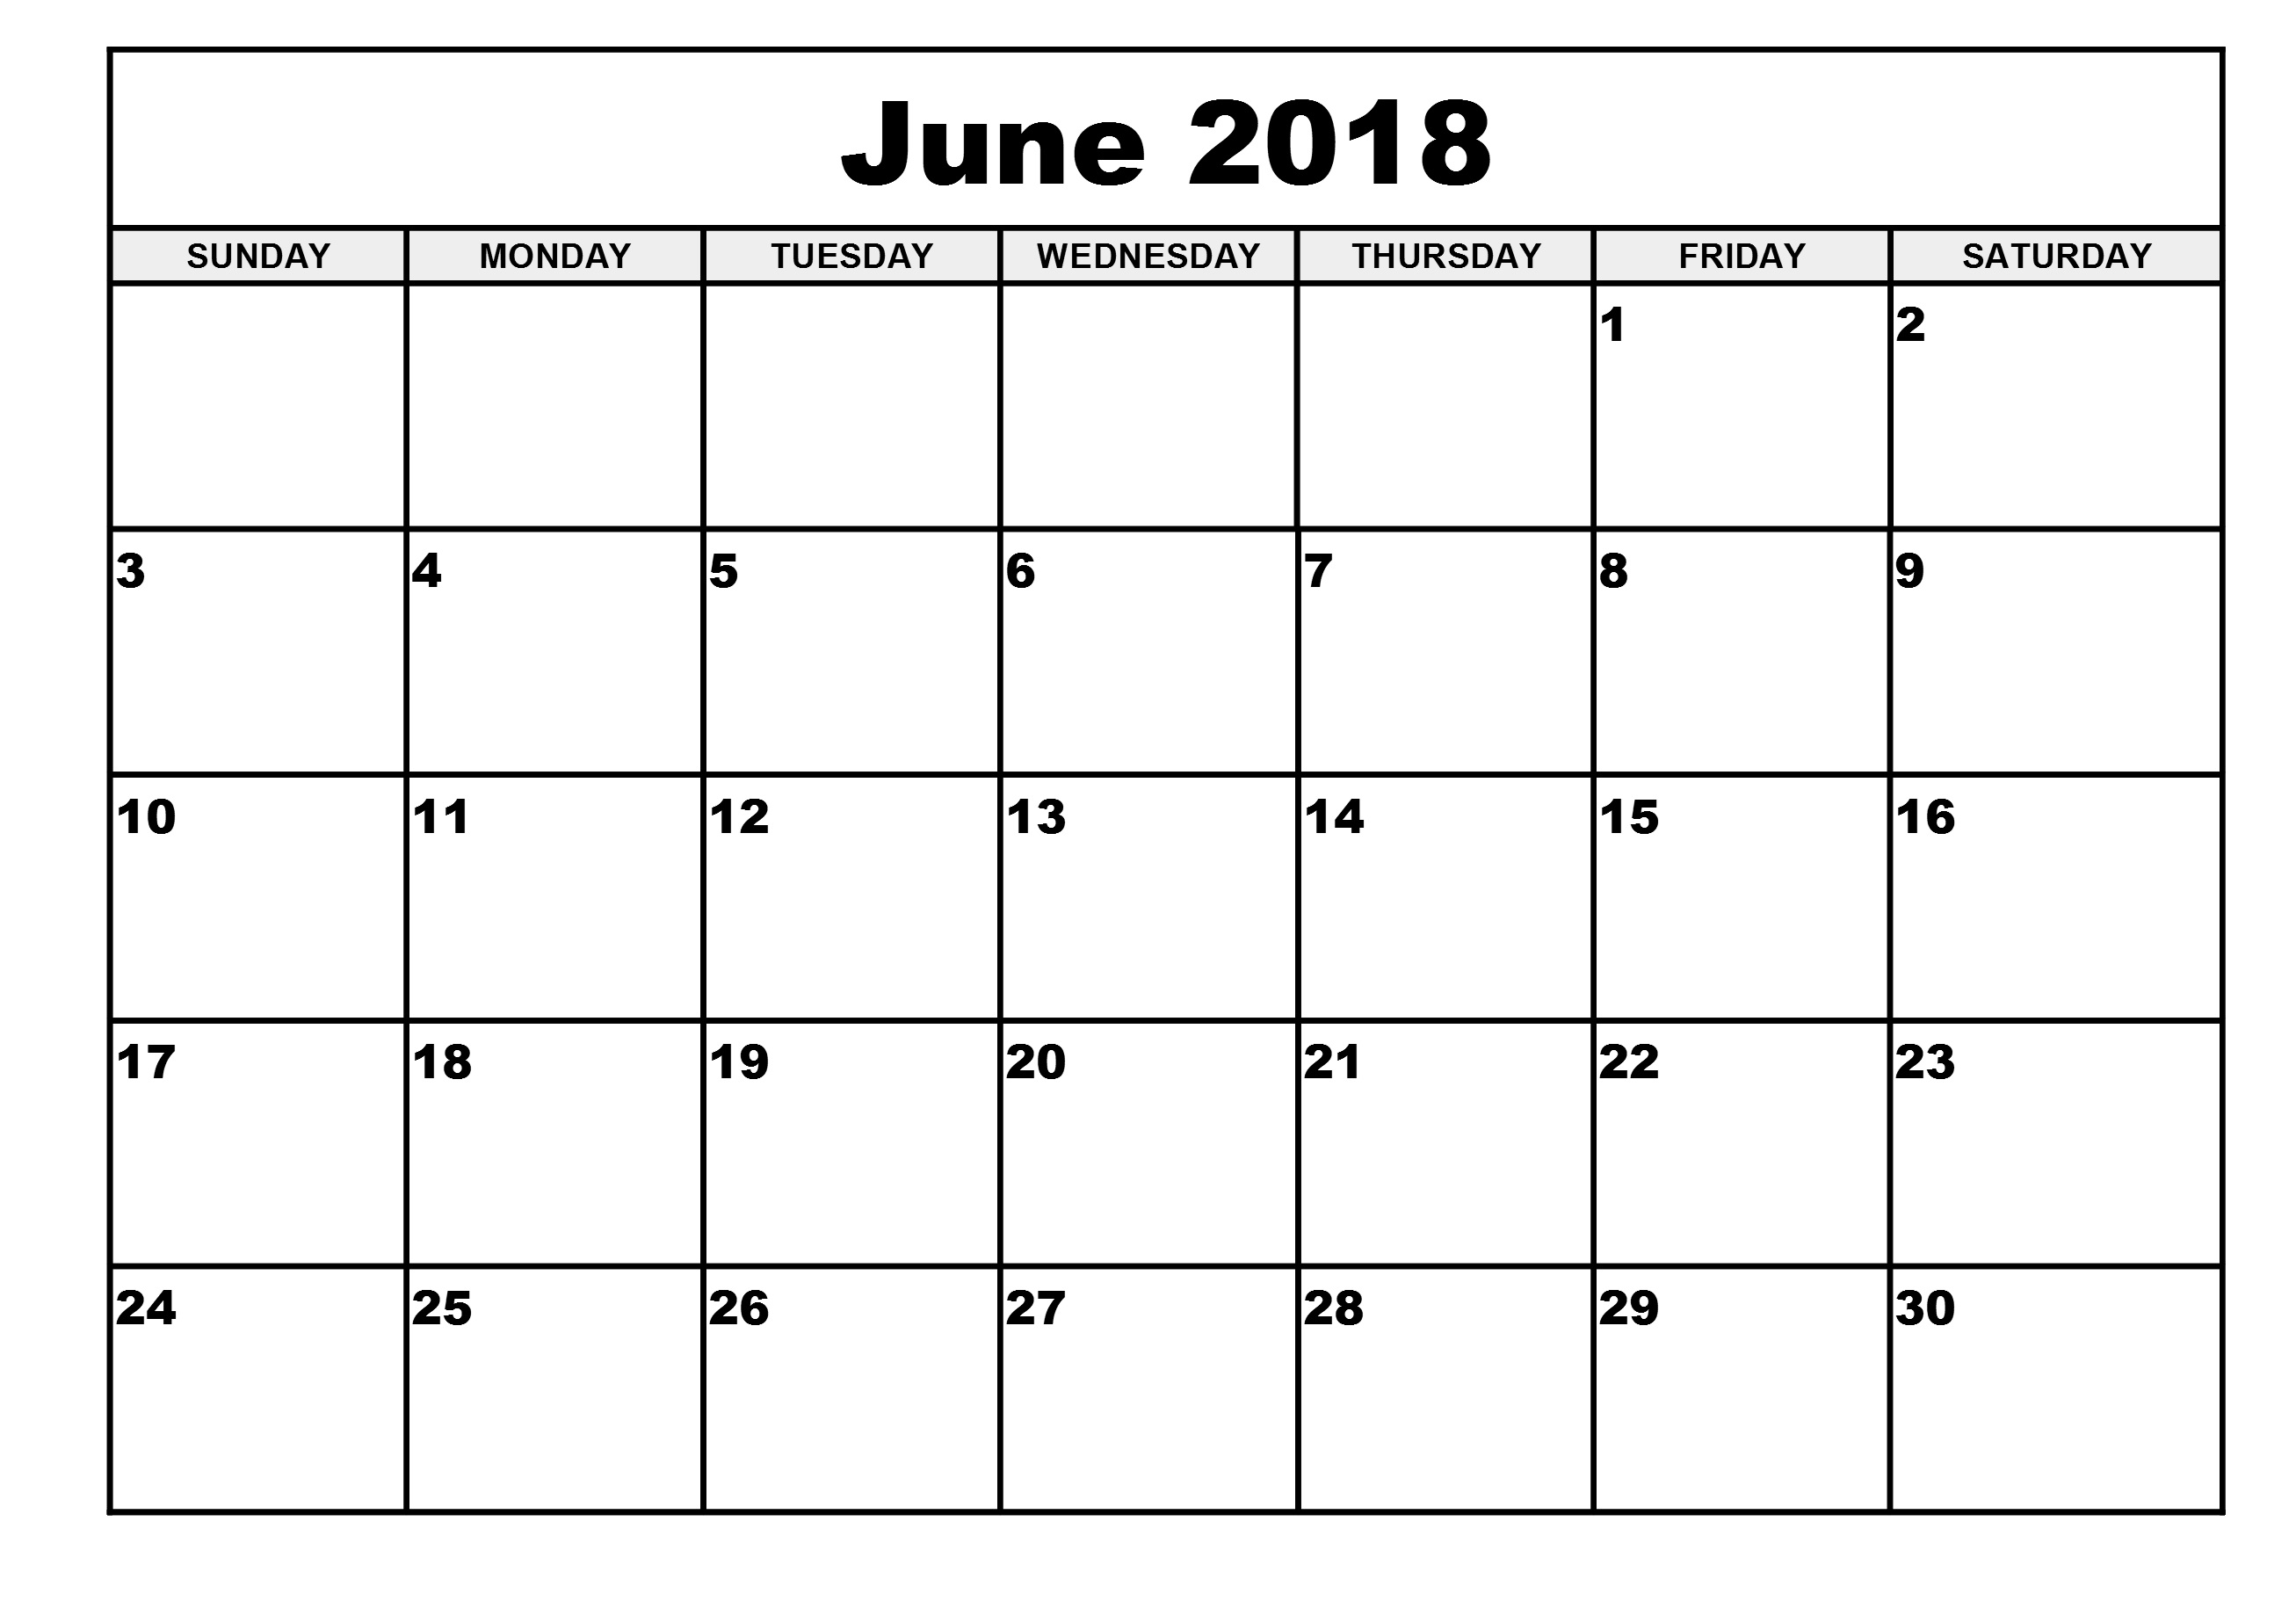 blank calender june 2018 Madrat.co